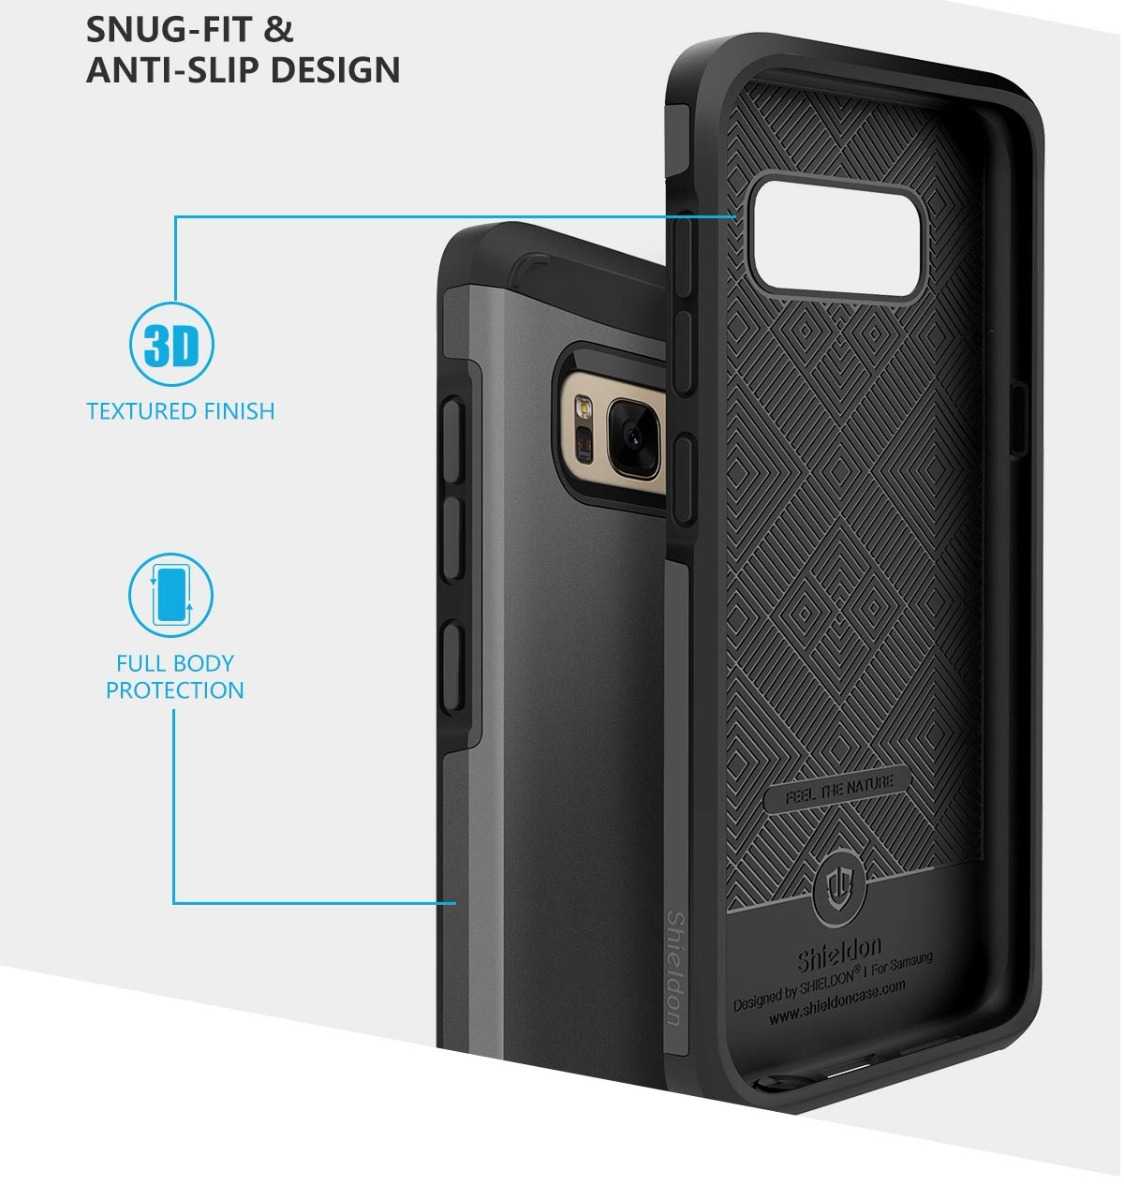 SHIELDON Galaxy S8 Dual Layer Case -SAMSUNG S8 Protection Case - Sunrise Series